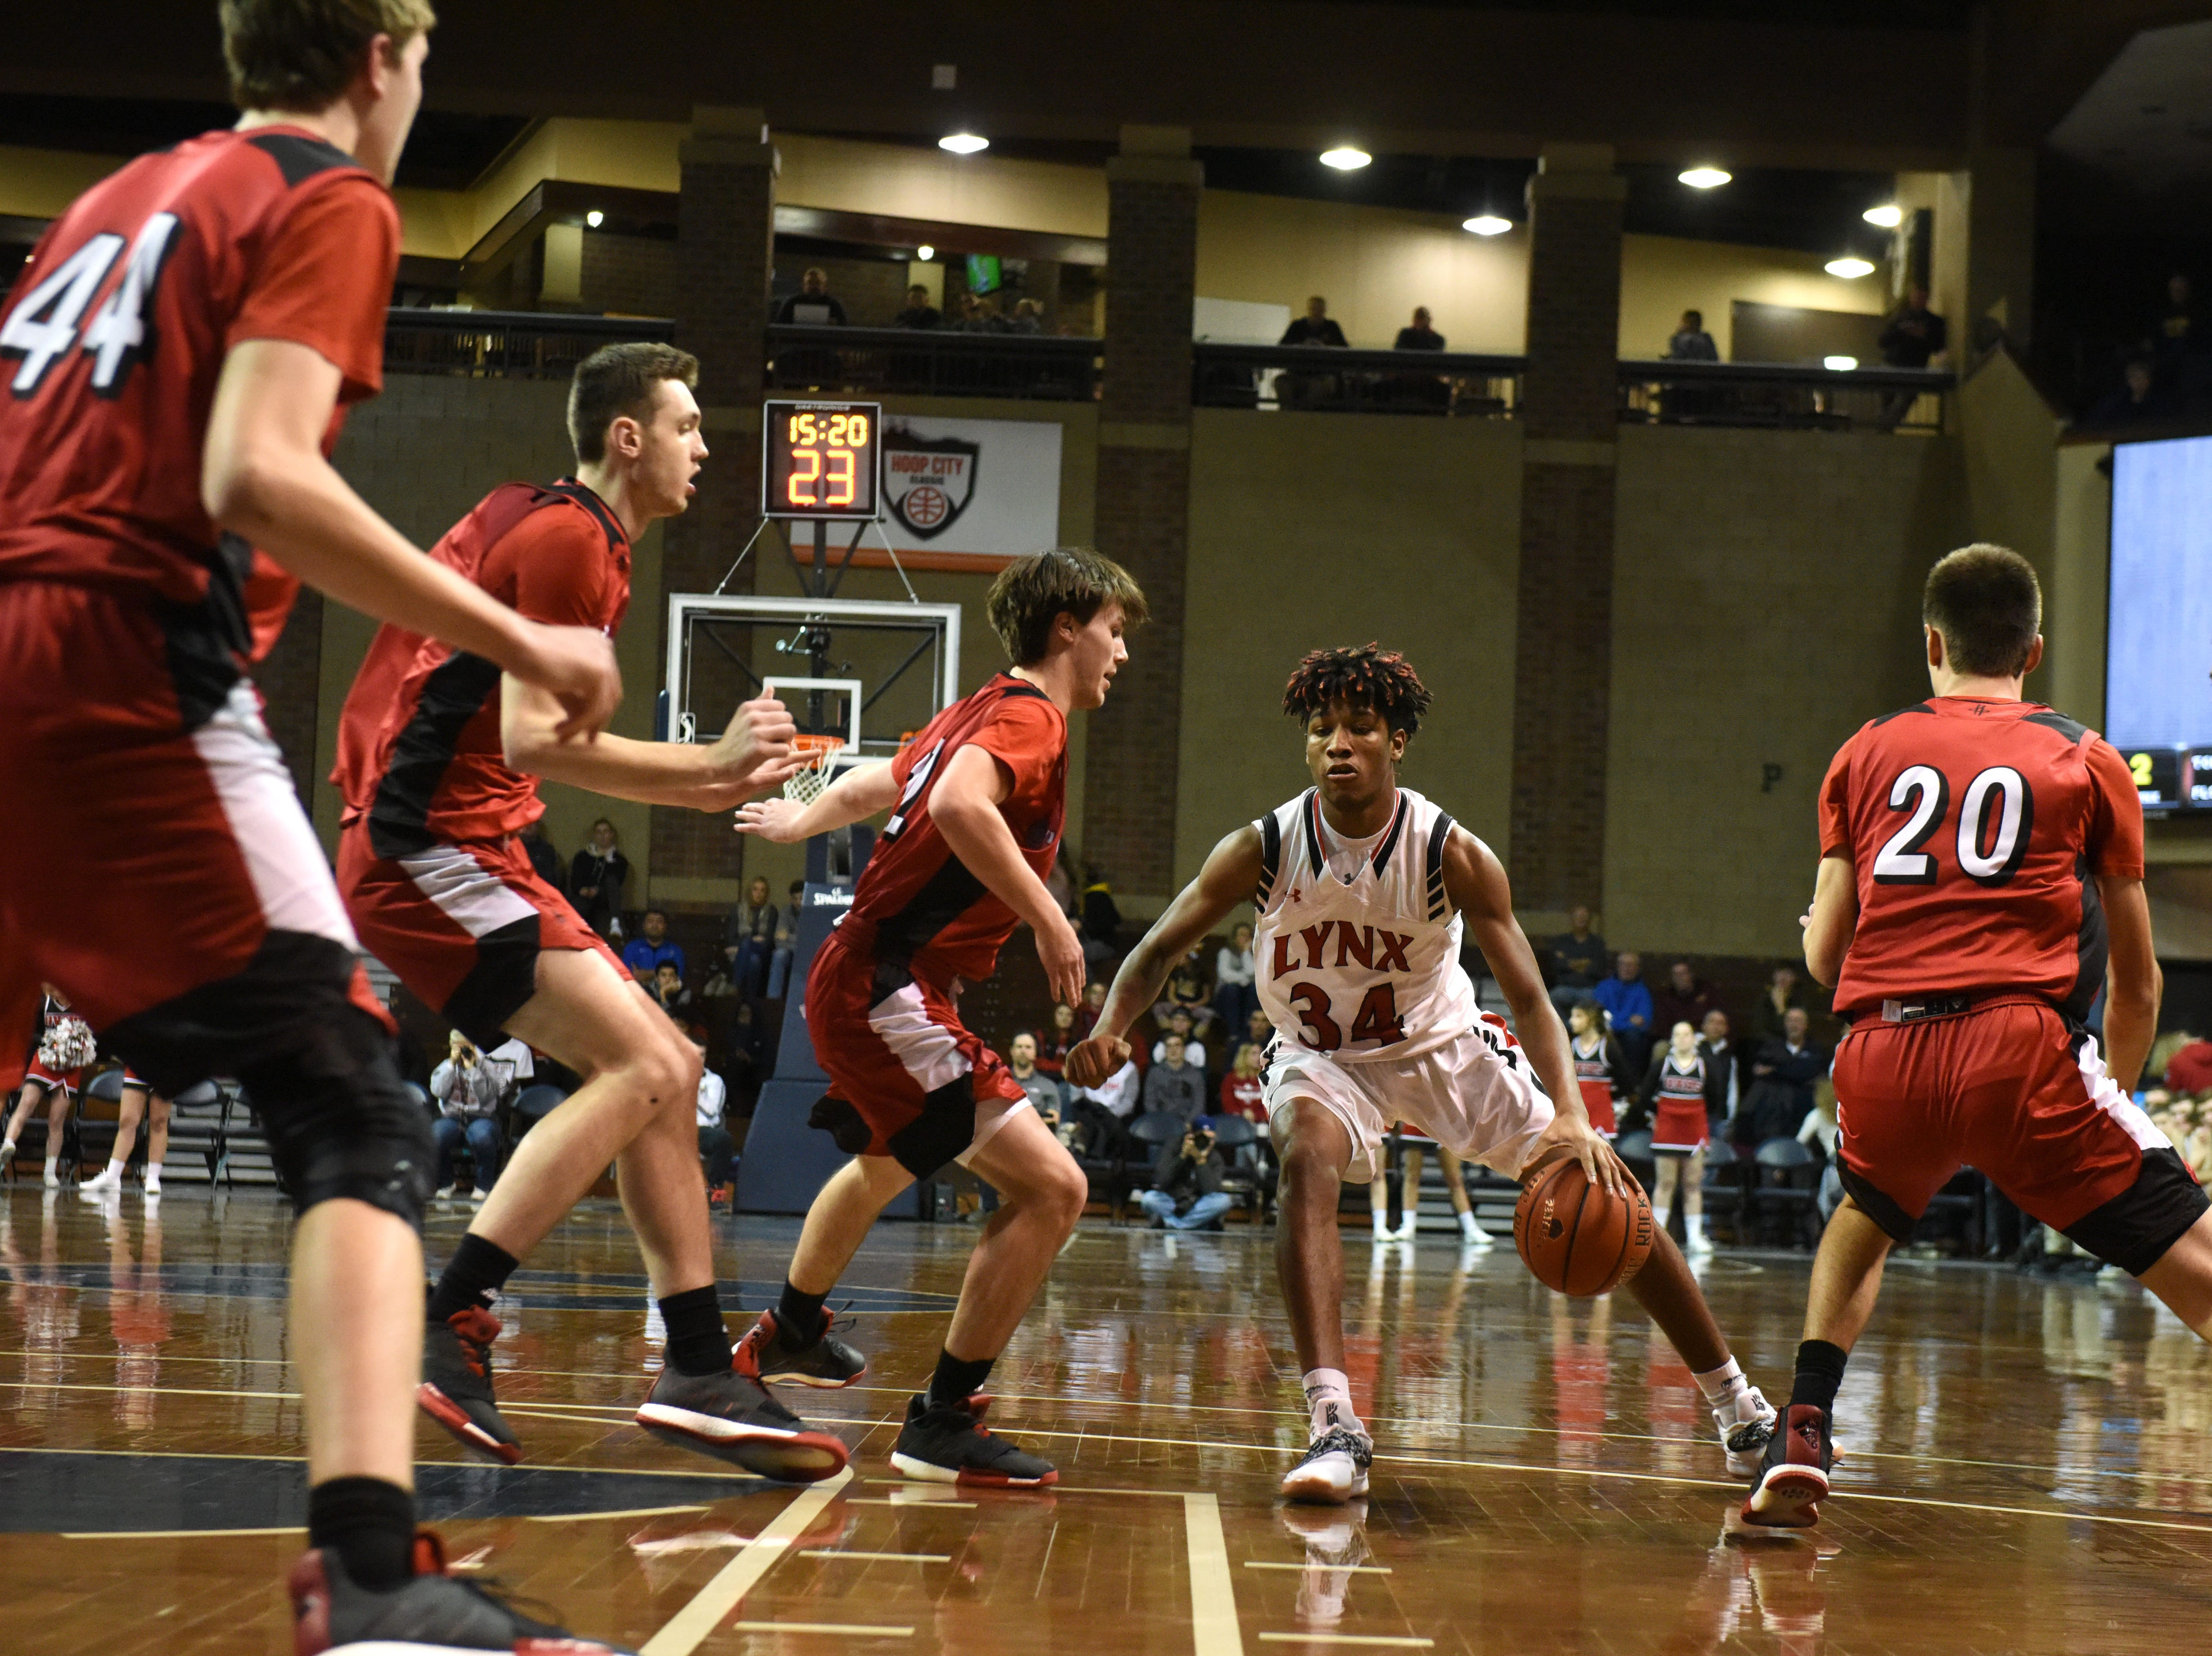 Brandon Valley's Jackson Hilton (34) dribbles the ball during a game against John Marshall at the Hoop City Classic at the Sanford Pentagon in Sioux Falls, S.D., Saturday, Dec. 29, 2018.